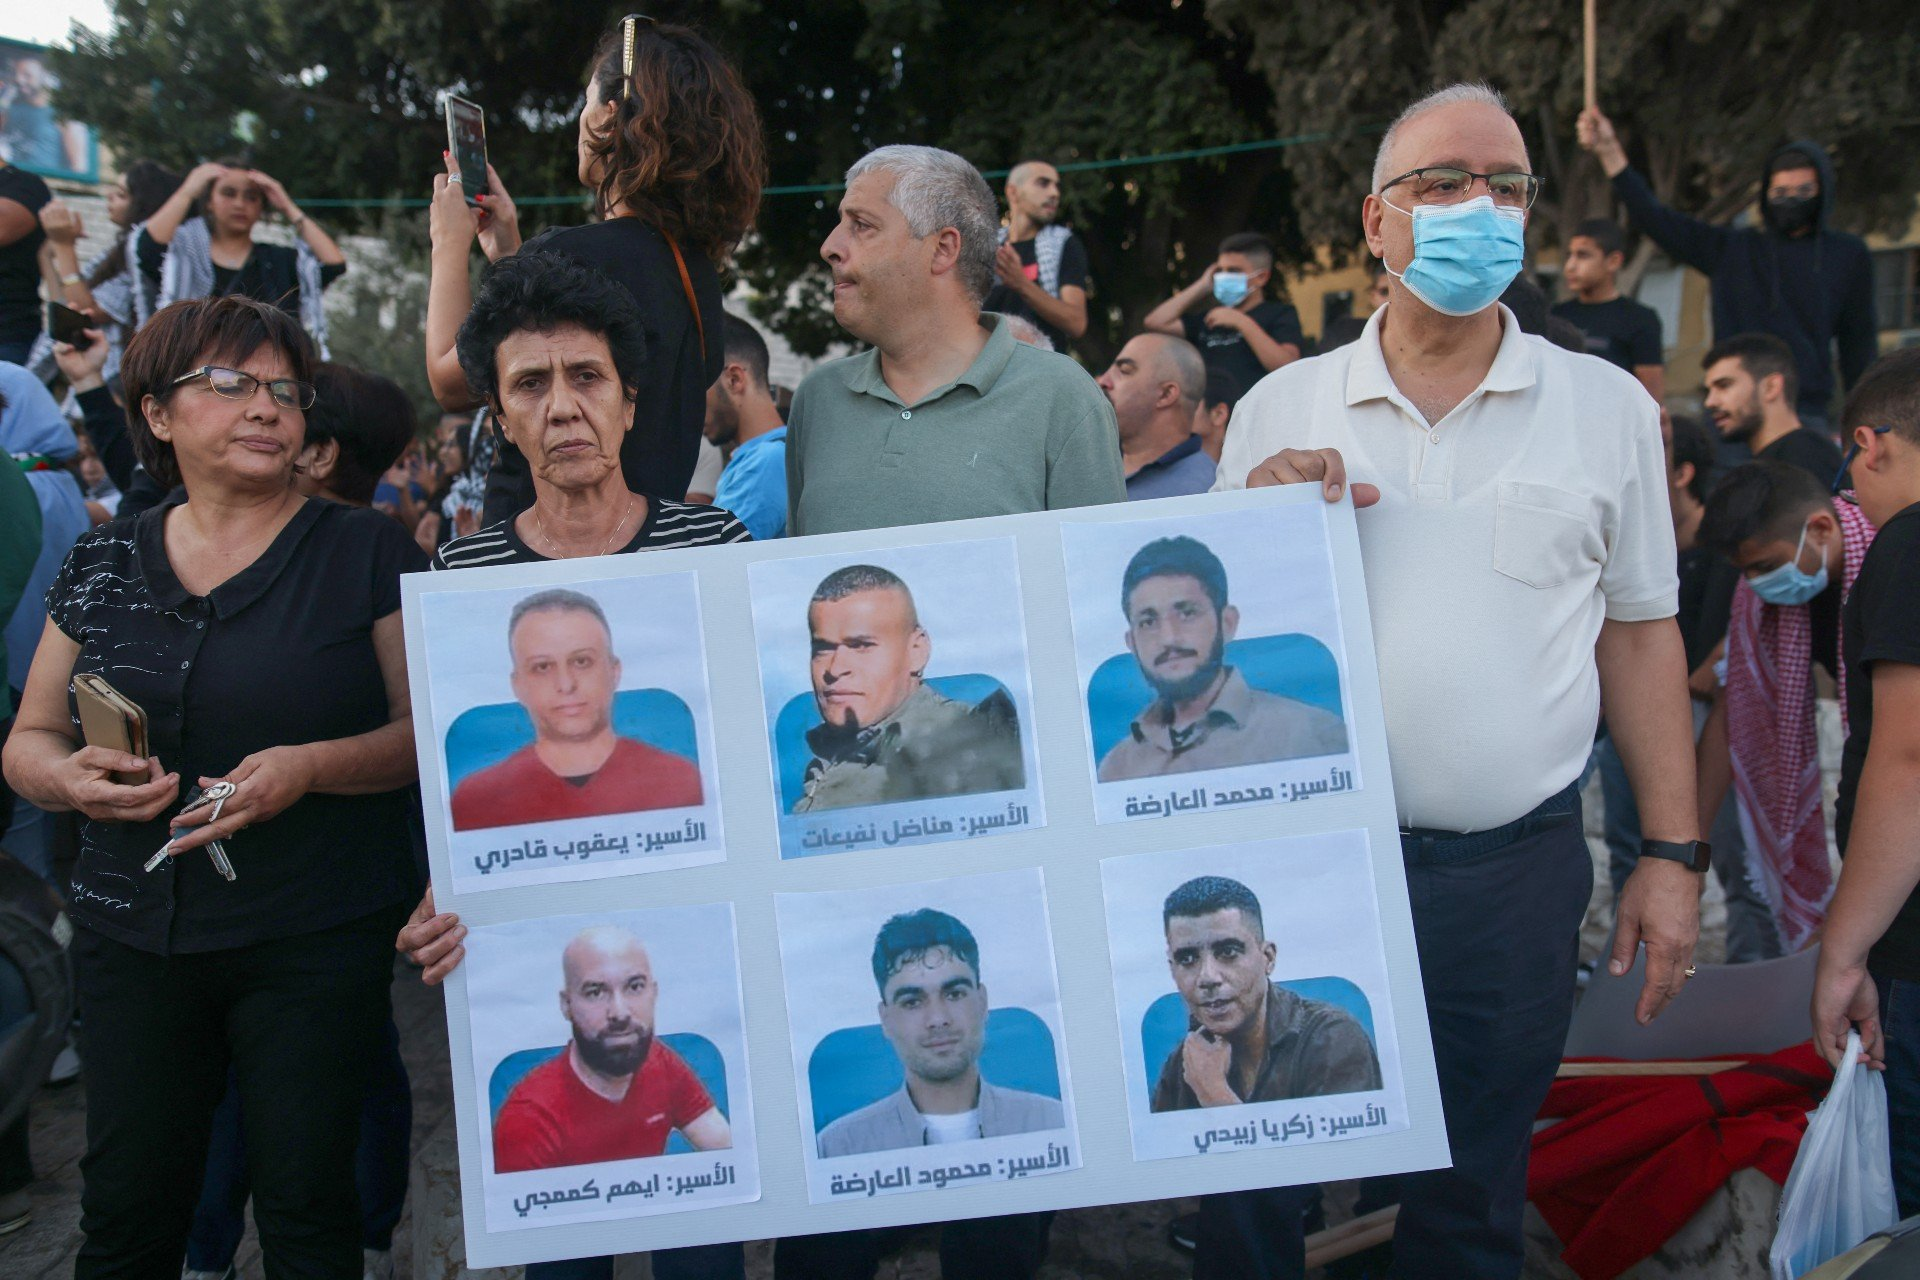 Protesters lift a placard depicting the six Palestinian prisoners, as they demonstrate to support them in the northern Israeli city of Nazareth, on 11 September (AFP)